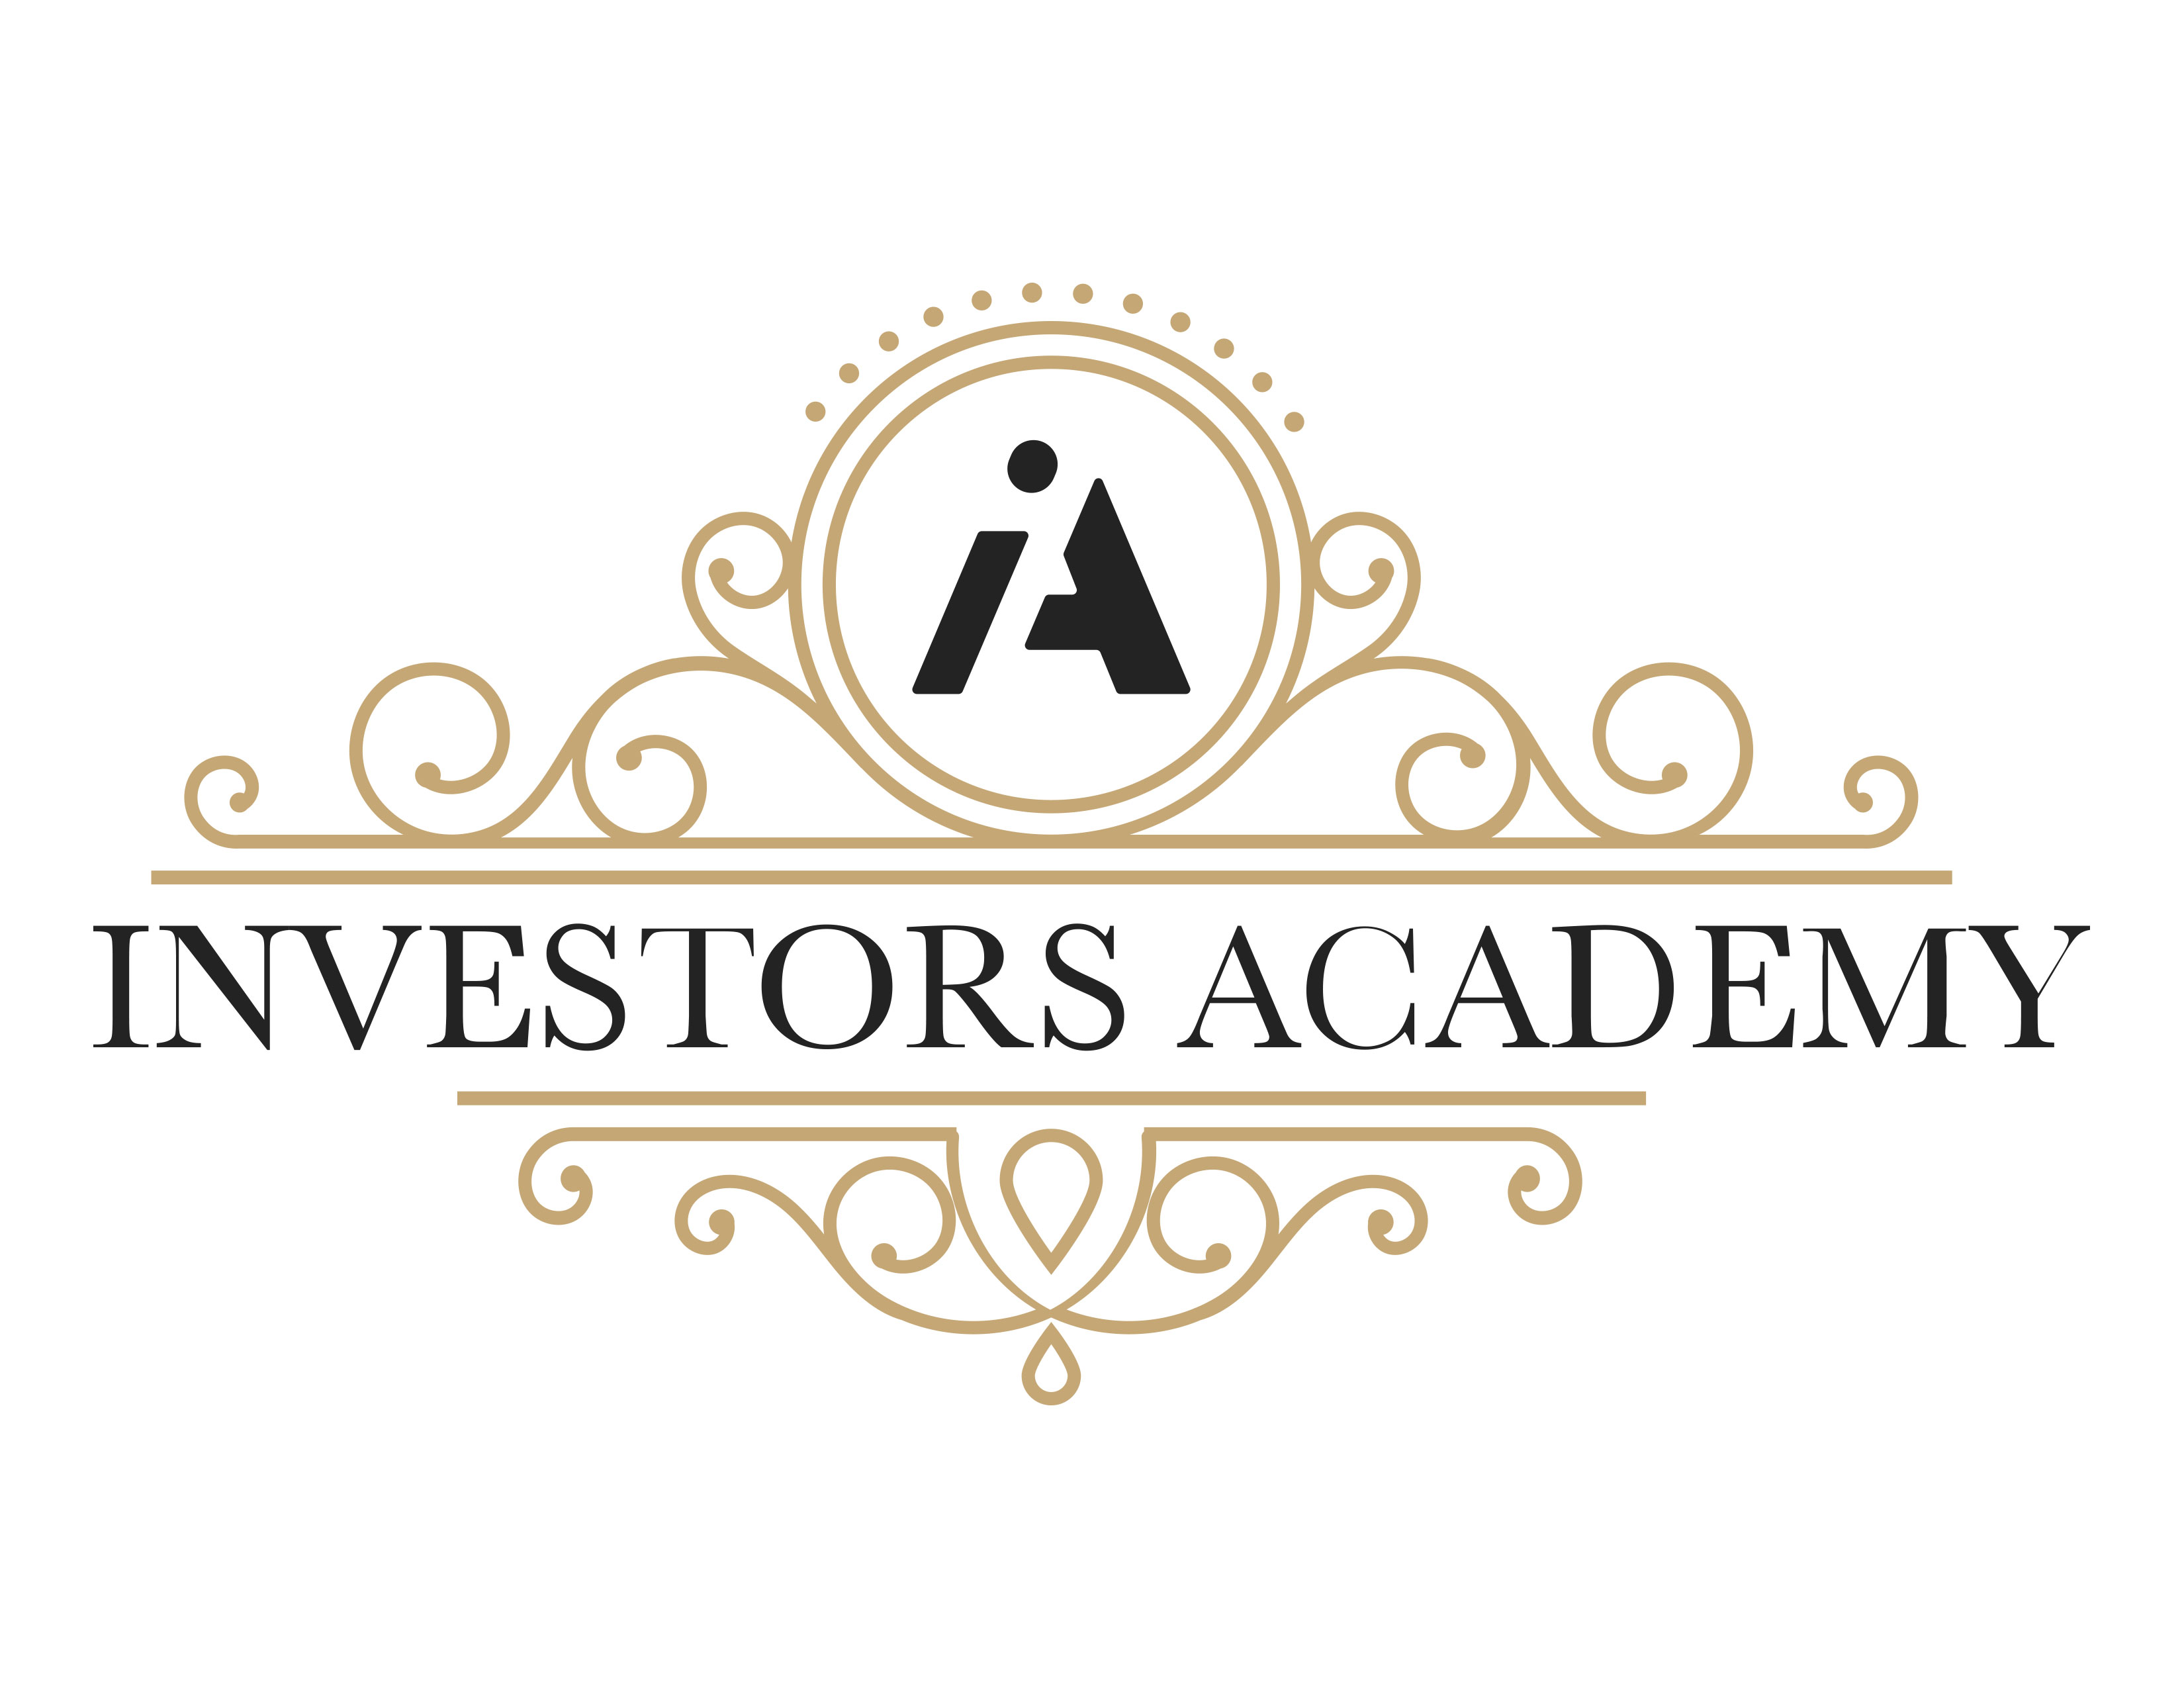 The Investors Academy is Officially Opening the Doors to Its Community Resource Center on June 29, 2019